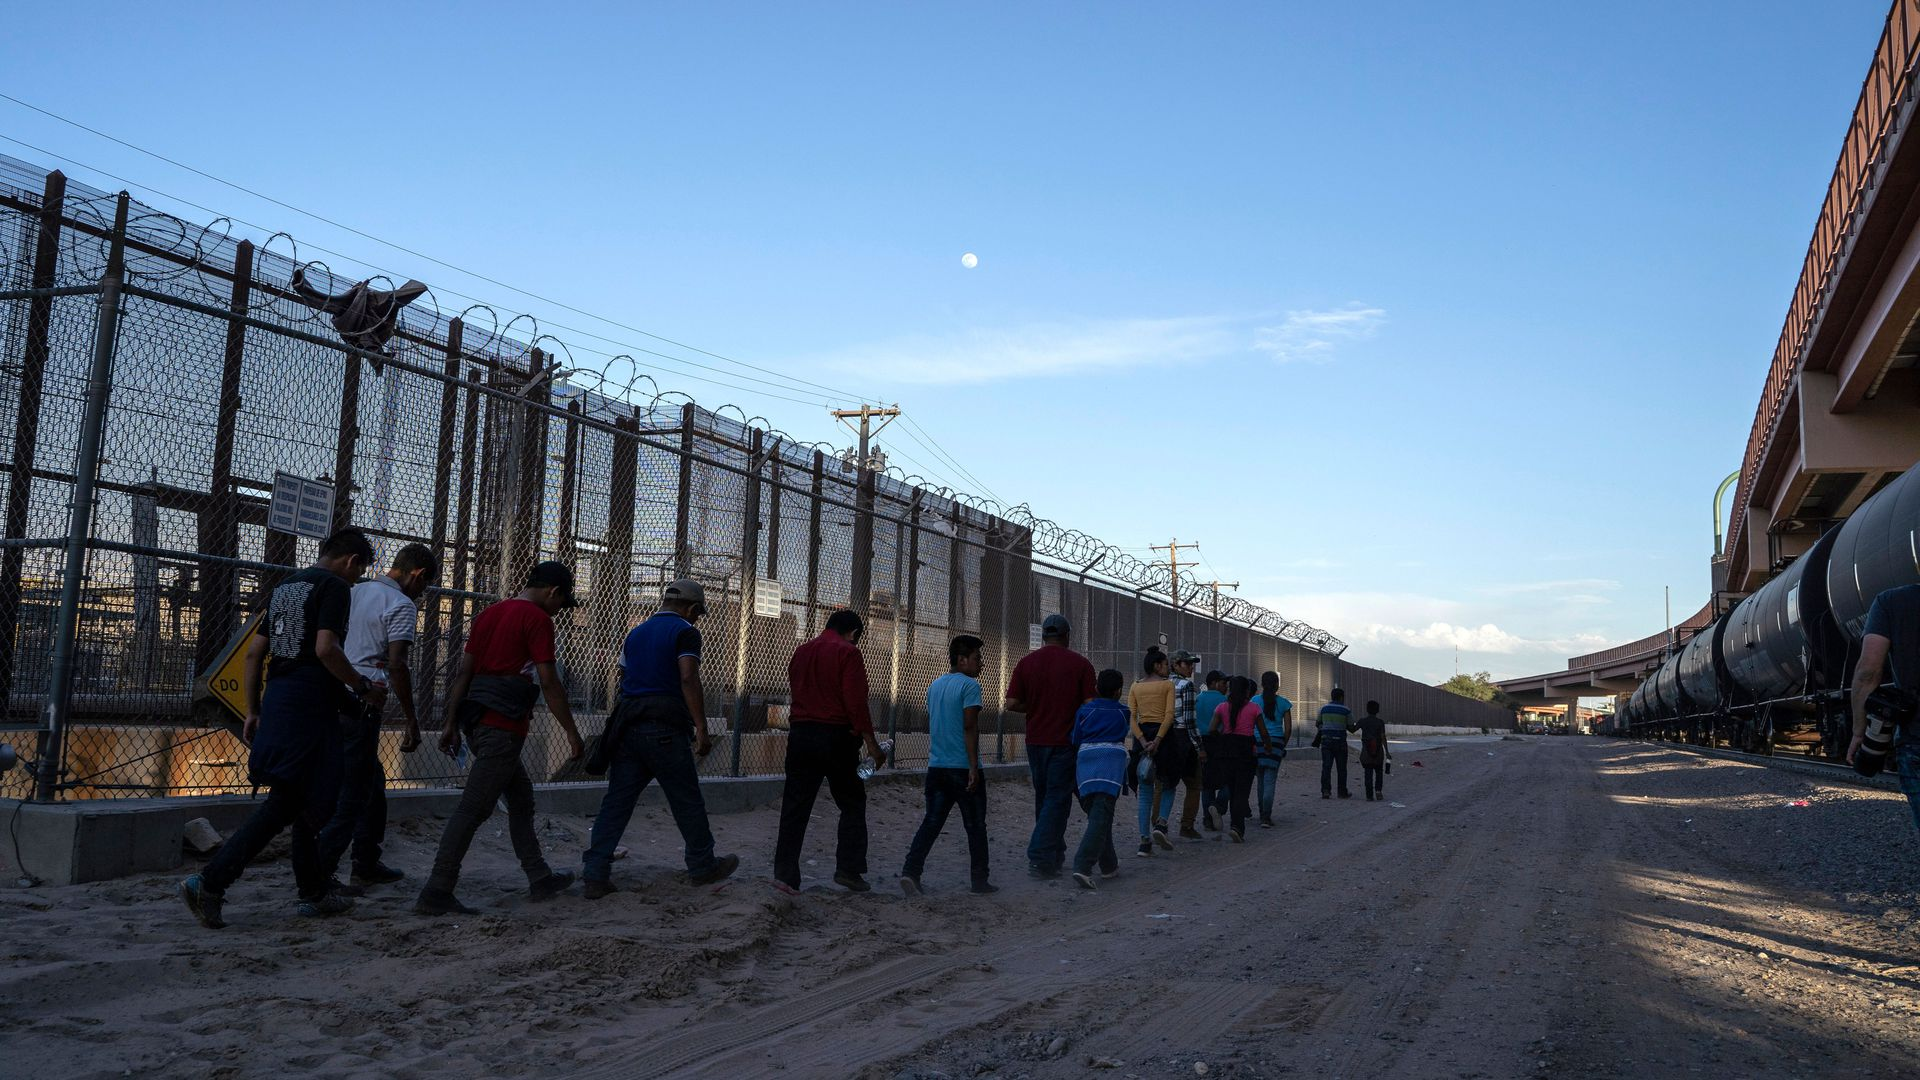 In this image, a line of migrants walk outside near a tall chain link fence.